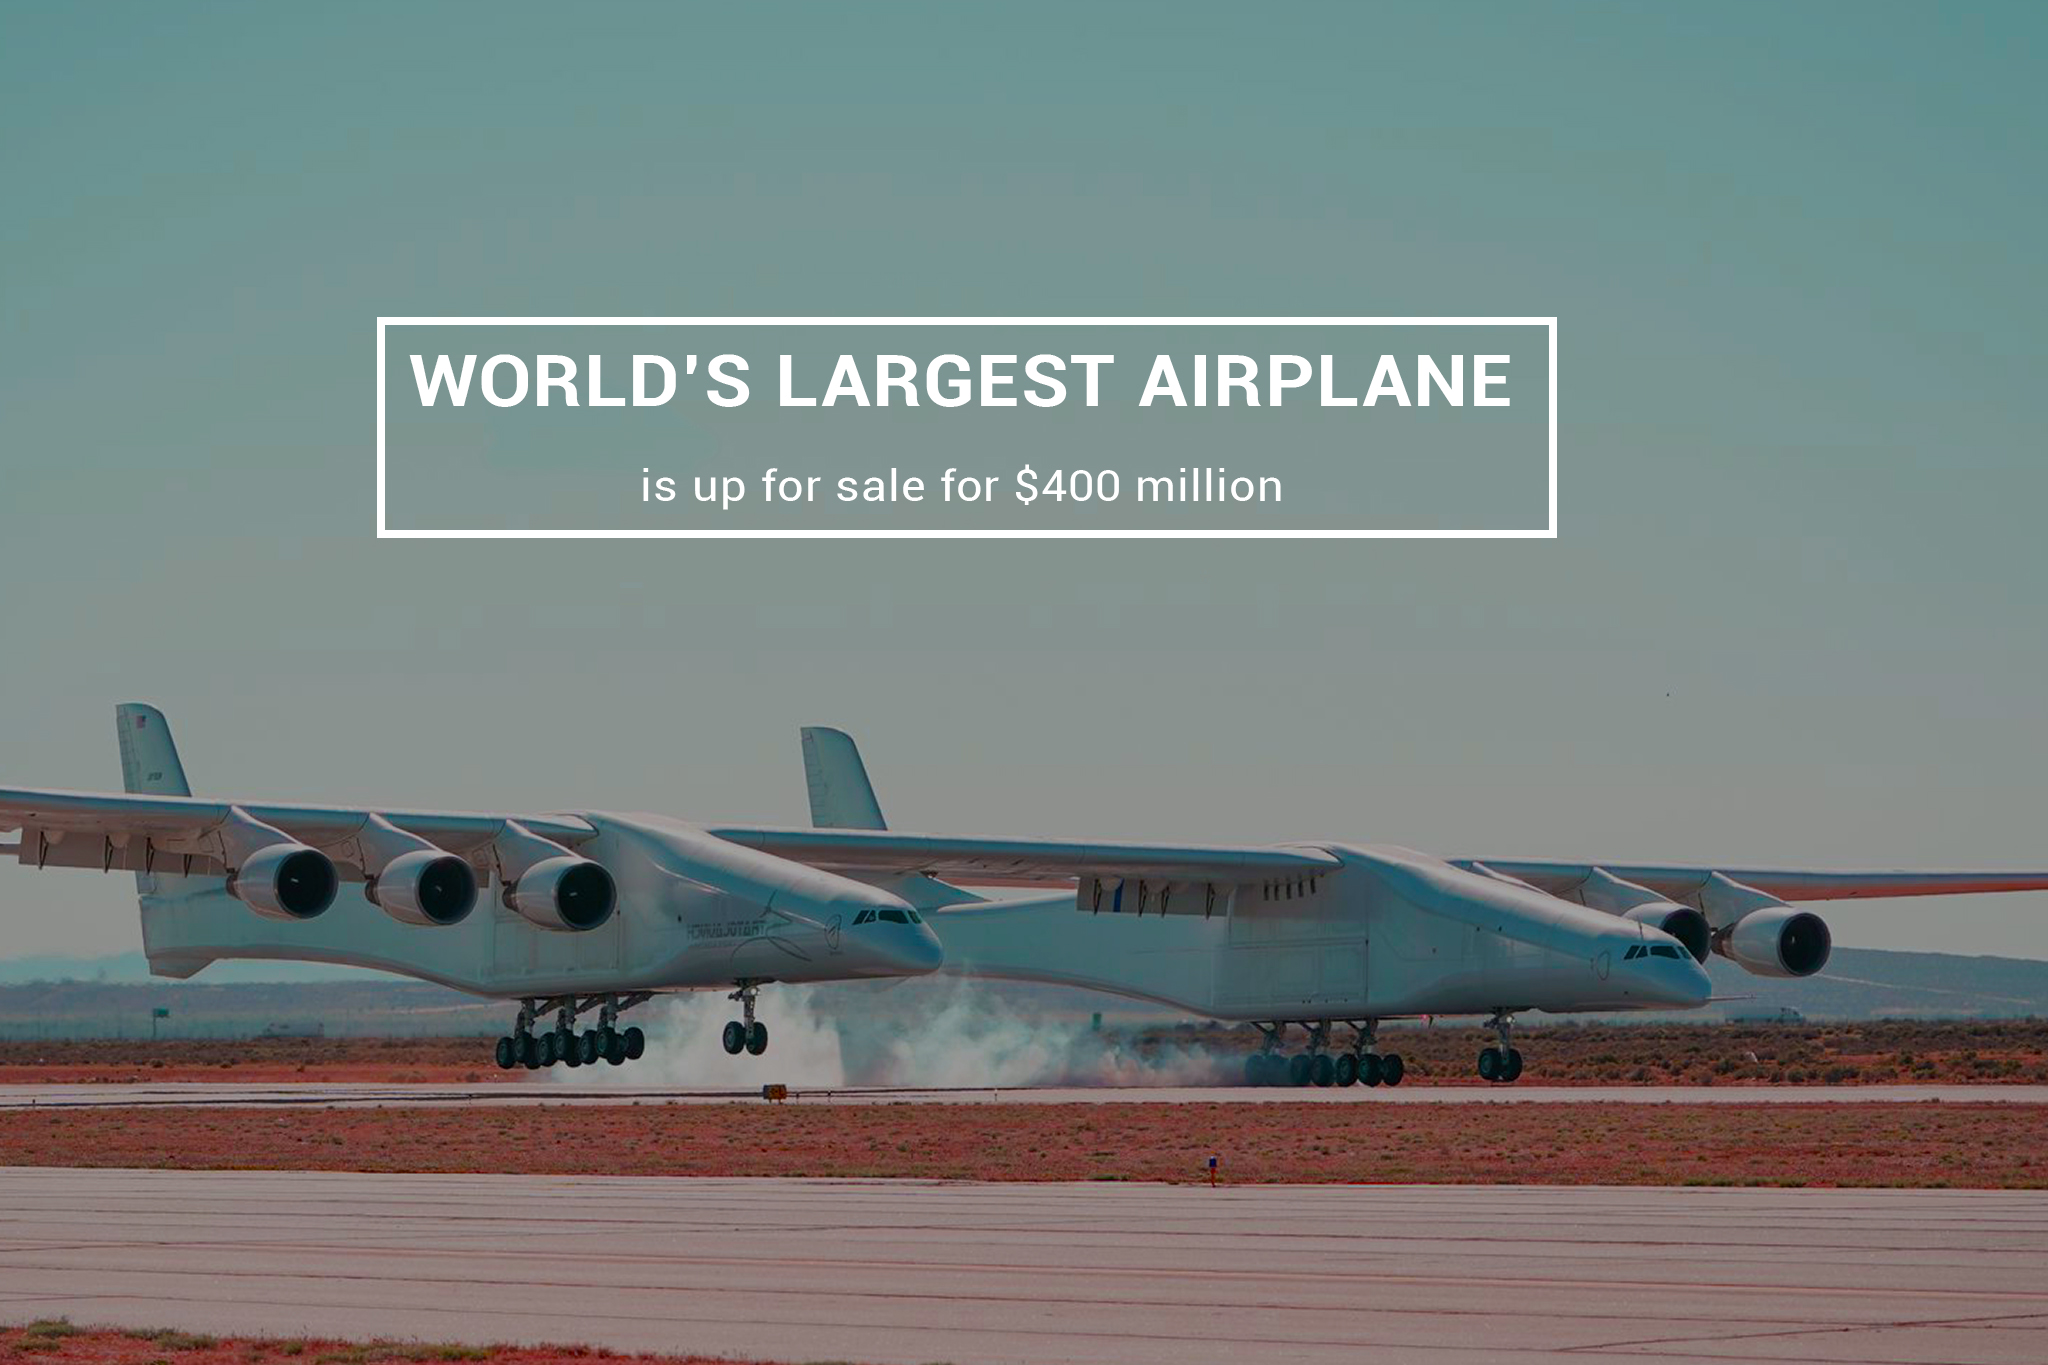 The World's Largest Airplane Set for Sale in $400 million